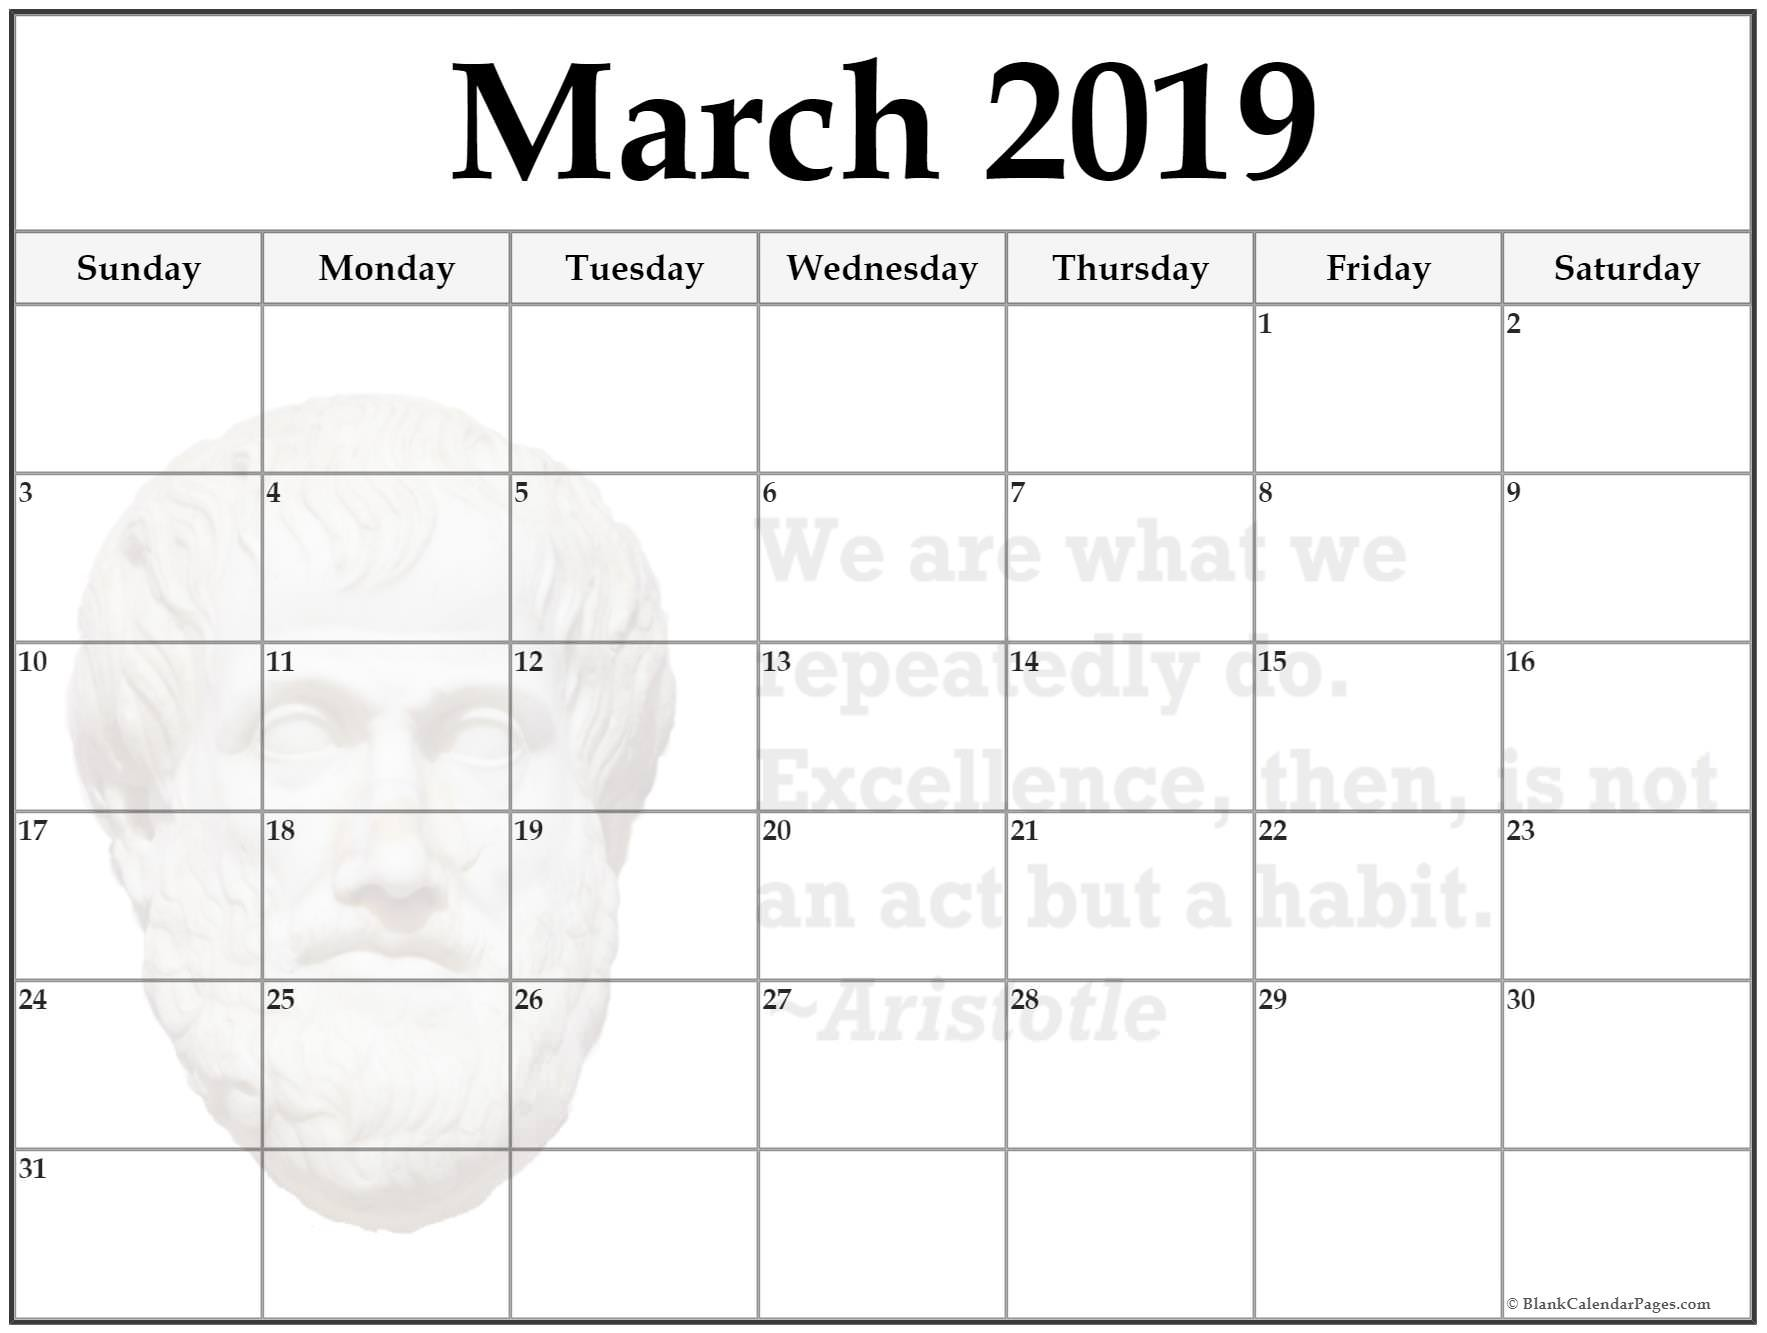 March Holiday Calendar 2019 Más Reciente Free Download March 2019 Blank Calendar Blank Calendar 2019 Of March Holiday Calendar 2019 Mejores Y Más Novedosos March 2019 Calendar Printable with Holidays